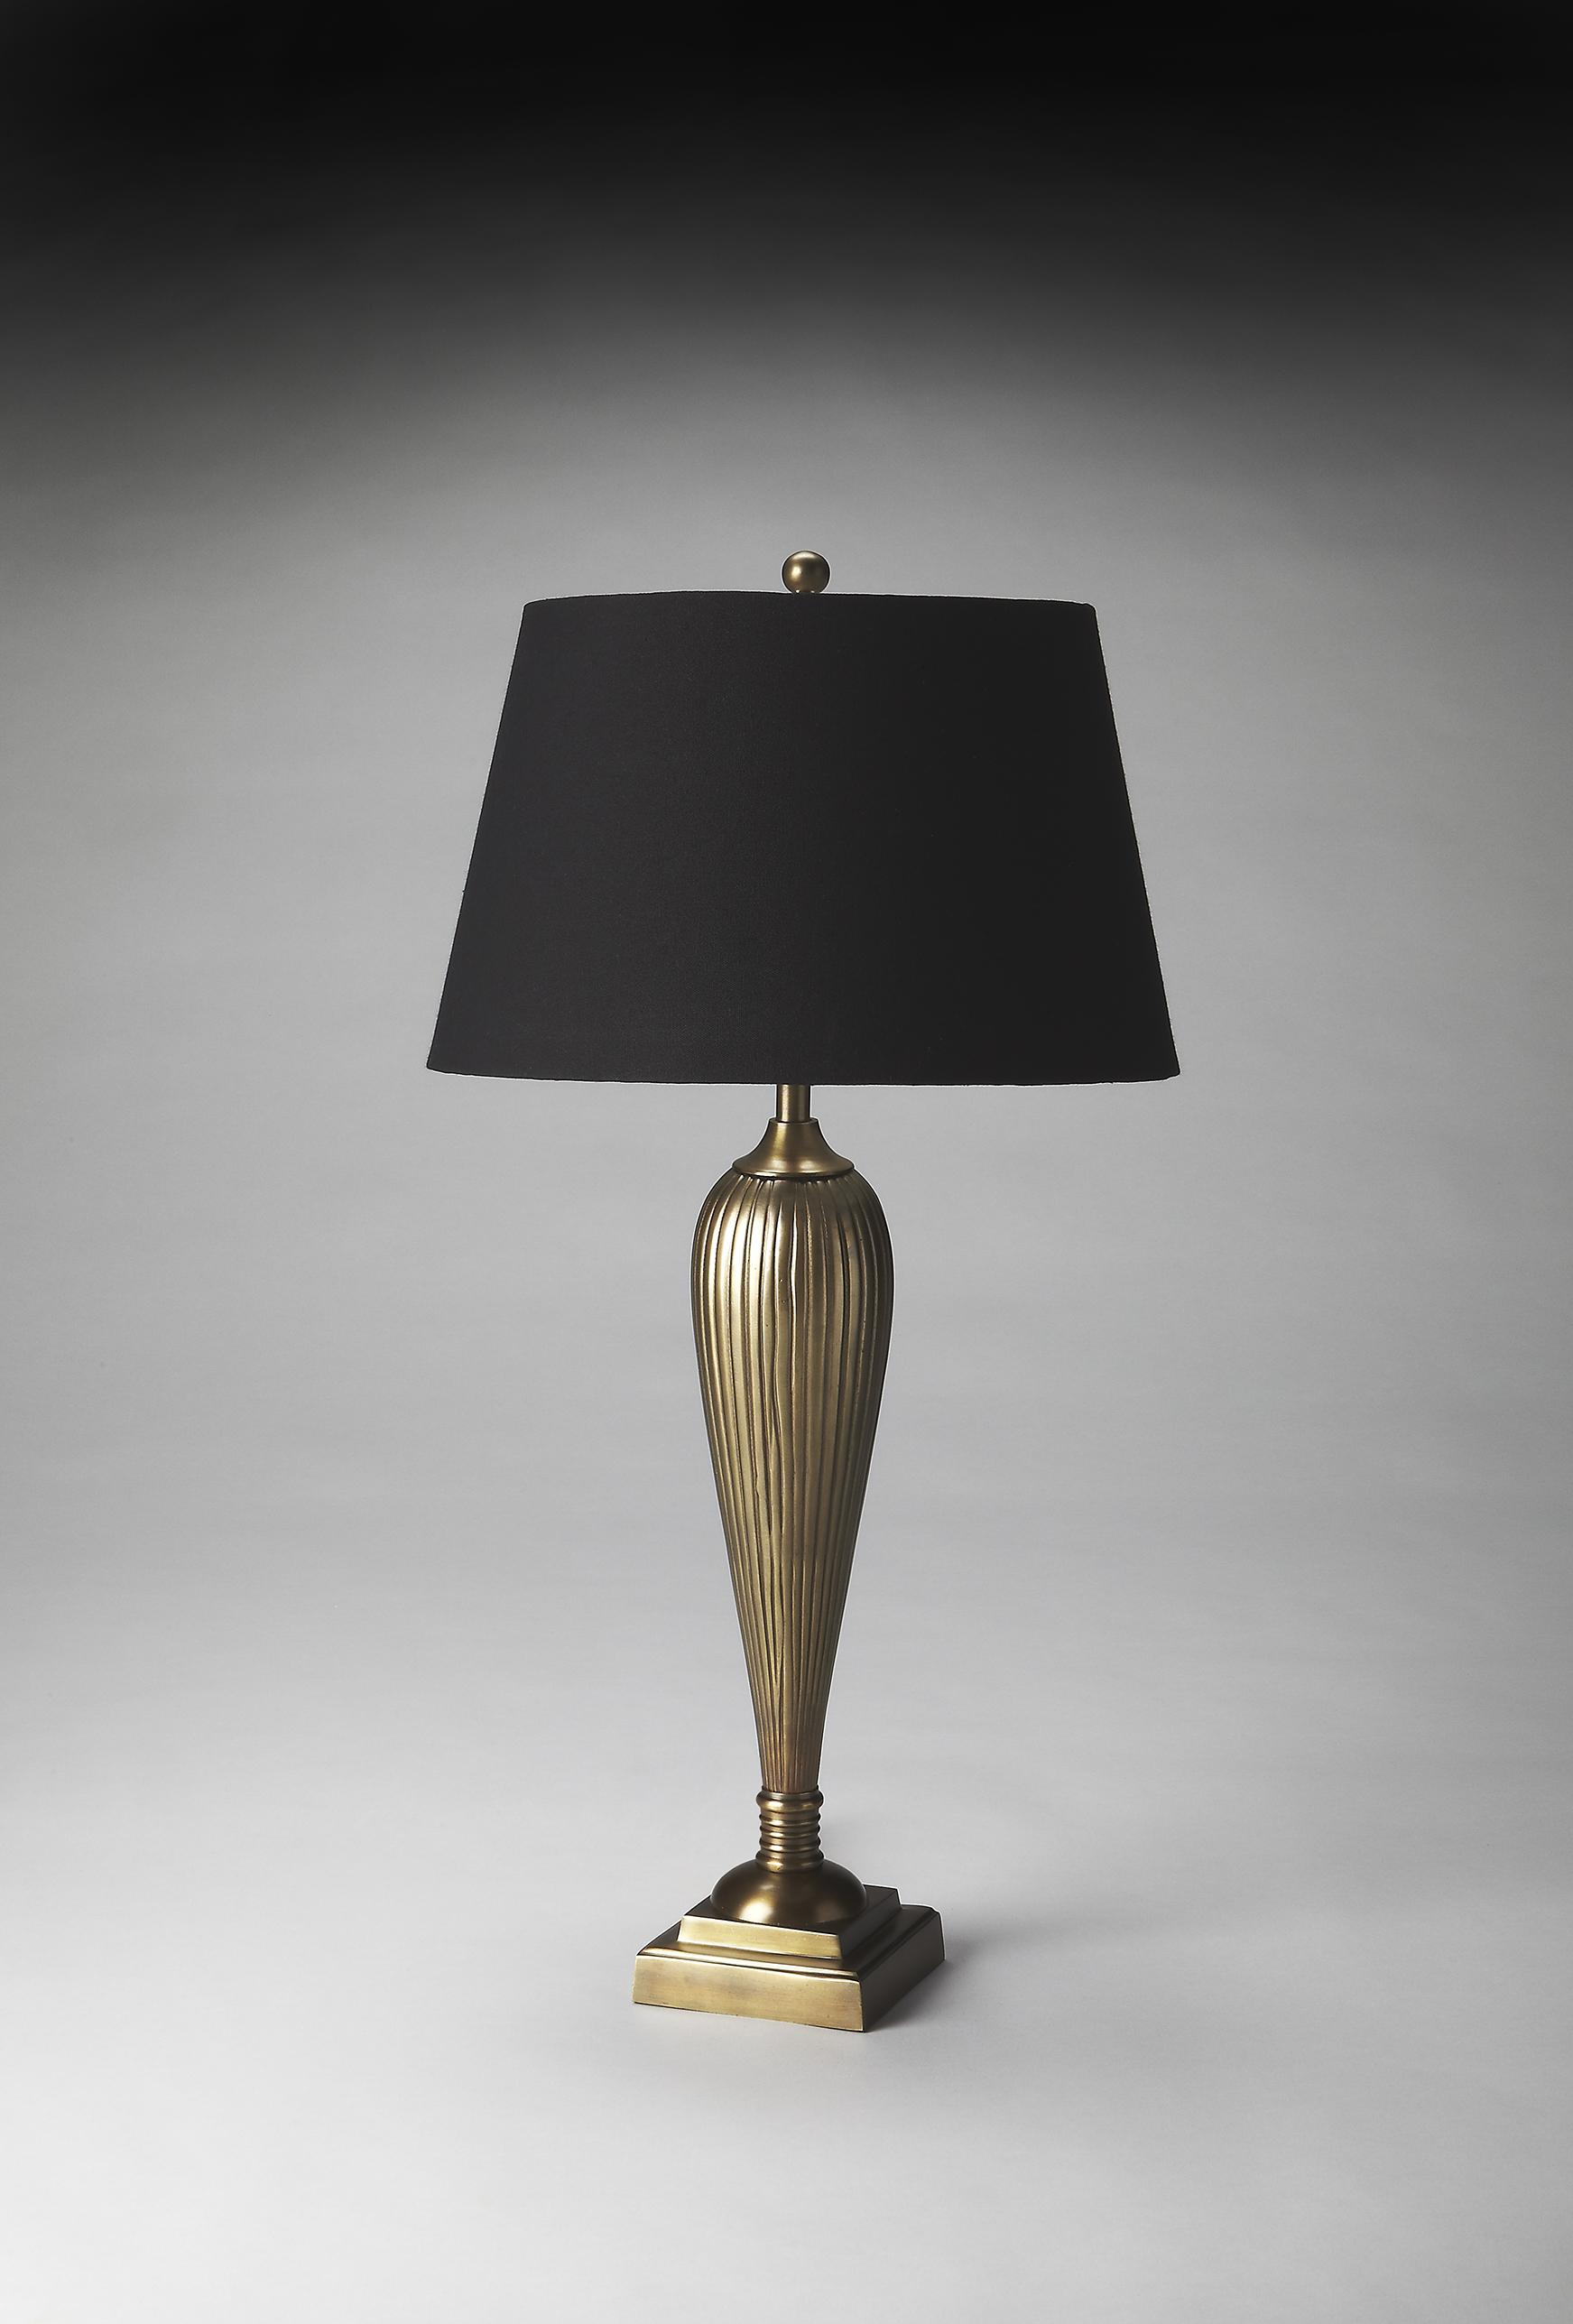 Butler Specialty Company Hors D'oeuvres Table Lamp - Item Number: 7131116